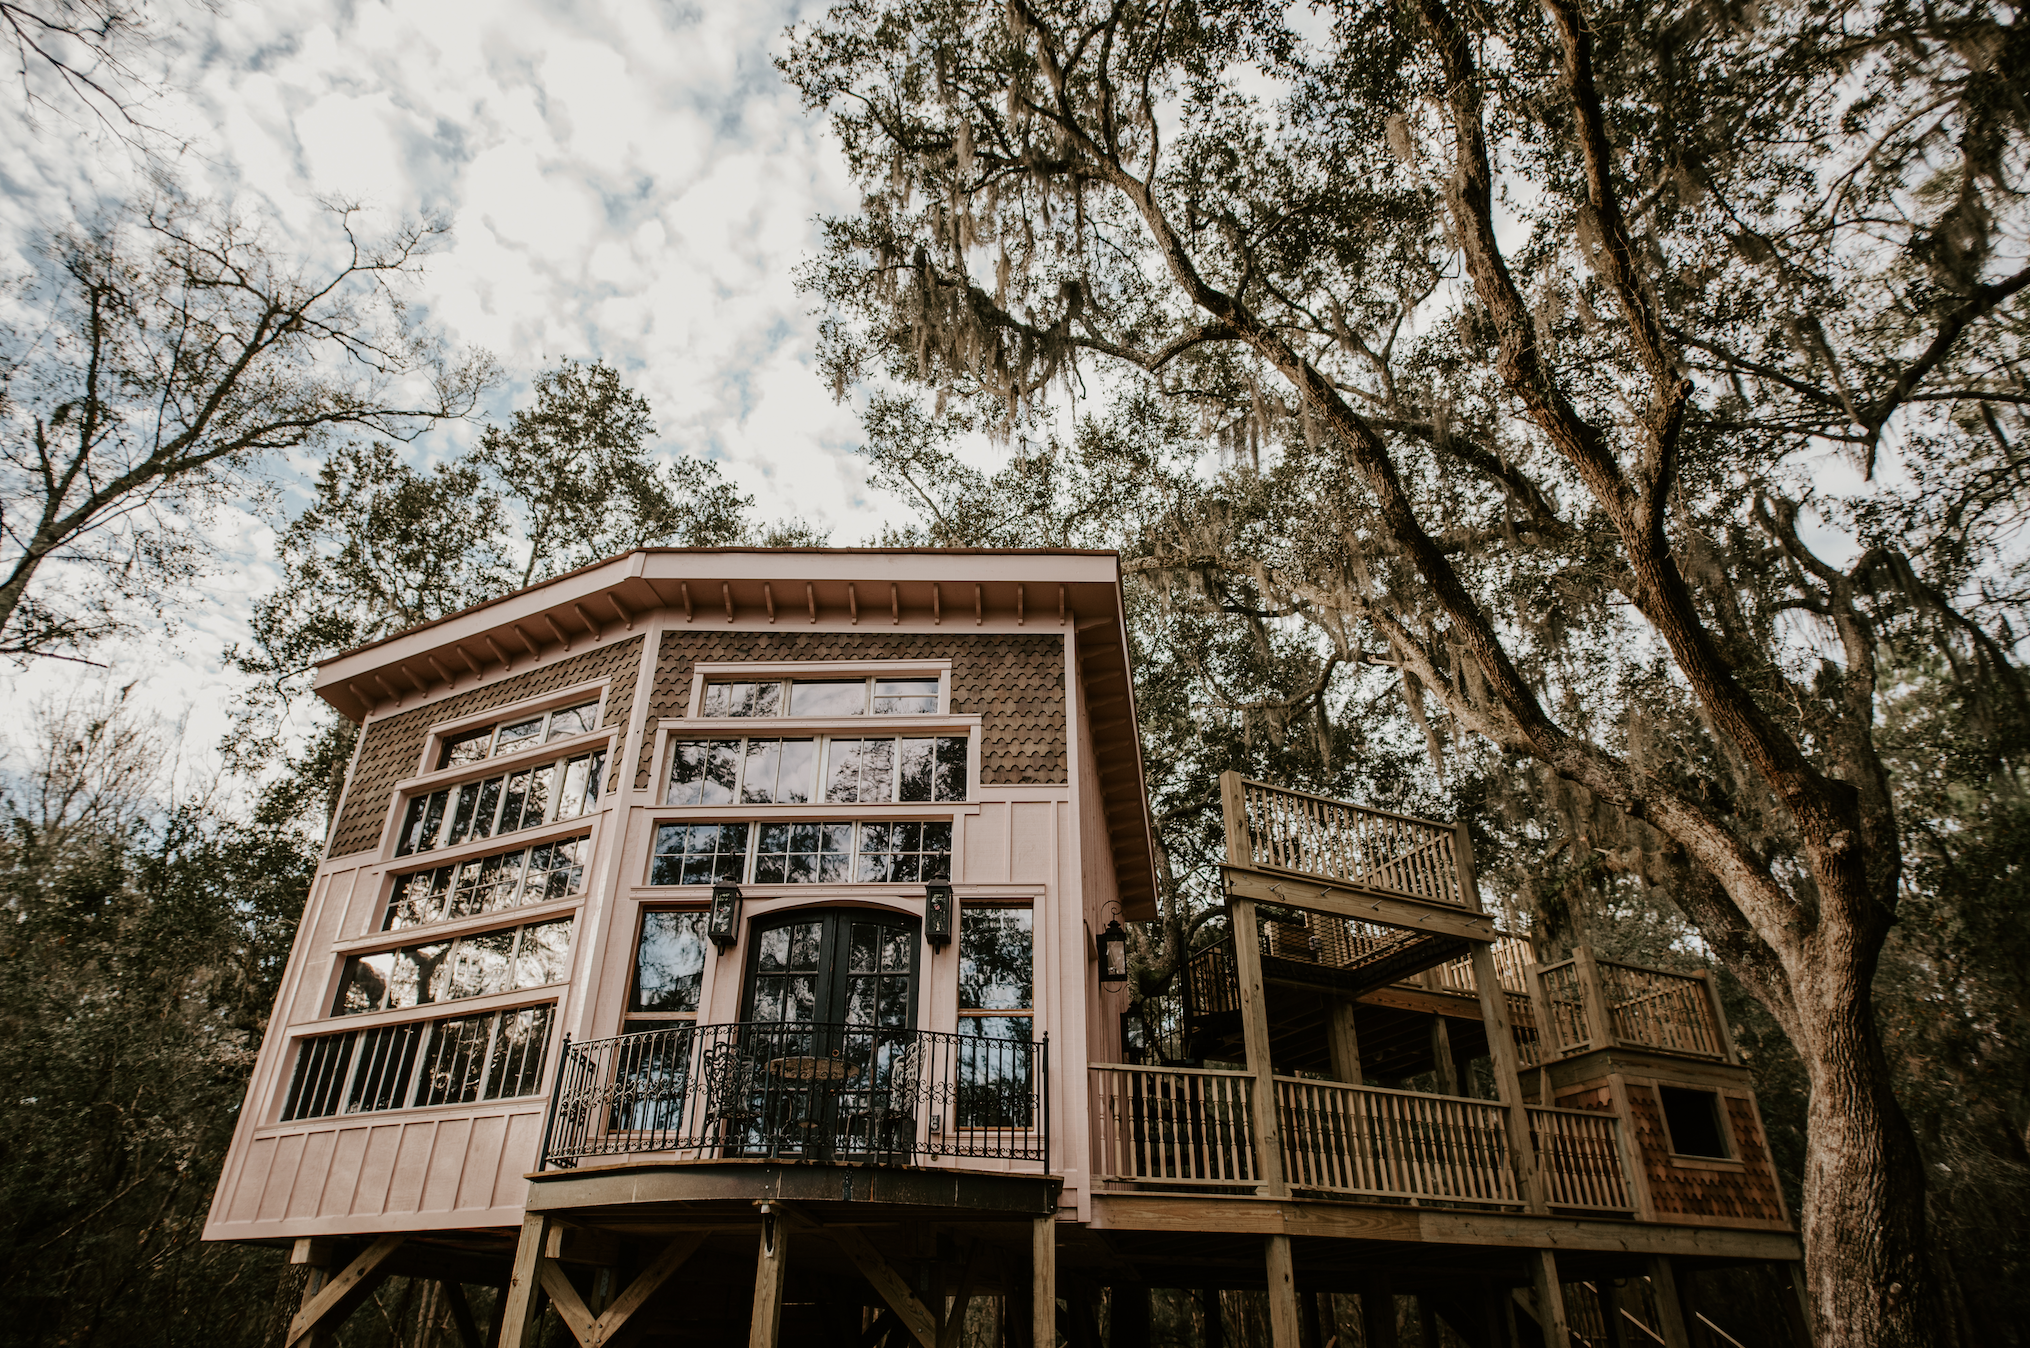 THE CHARLESTON TREEHOUSE - charming, Historic, luxurious, waterfrontCHARLESTON, SC